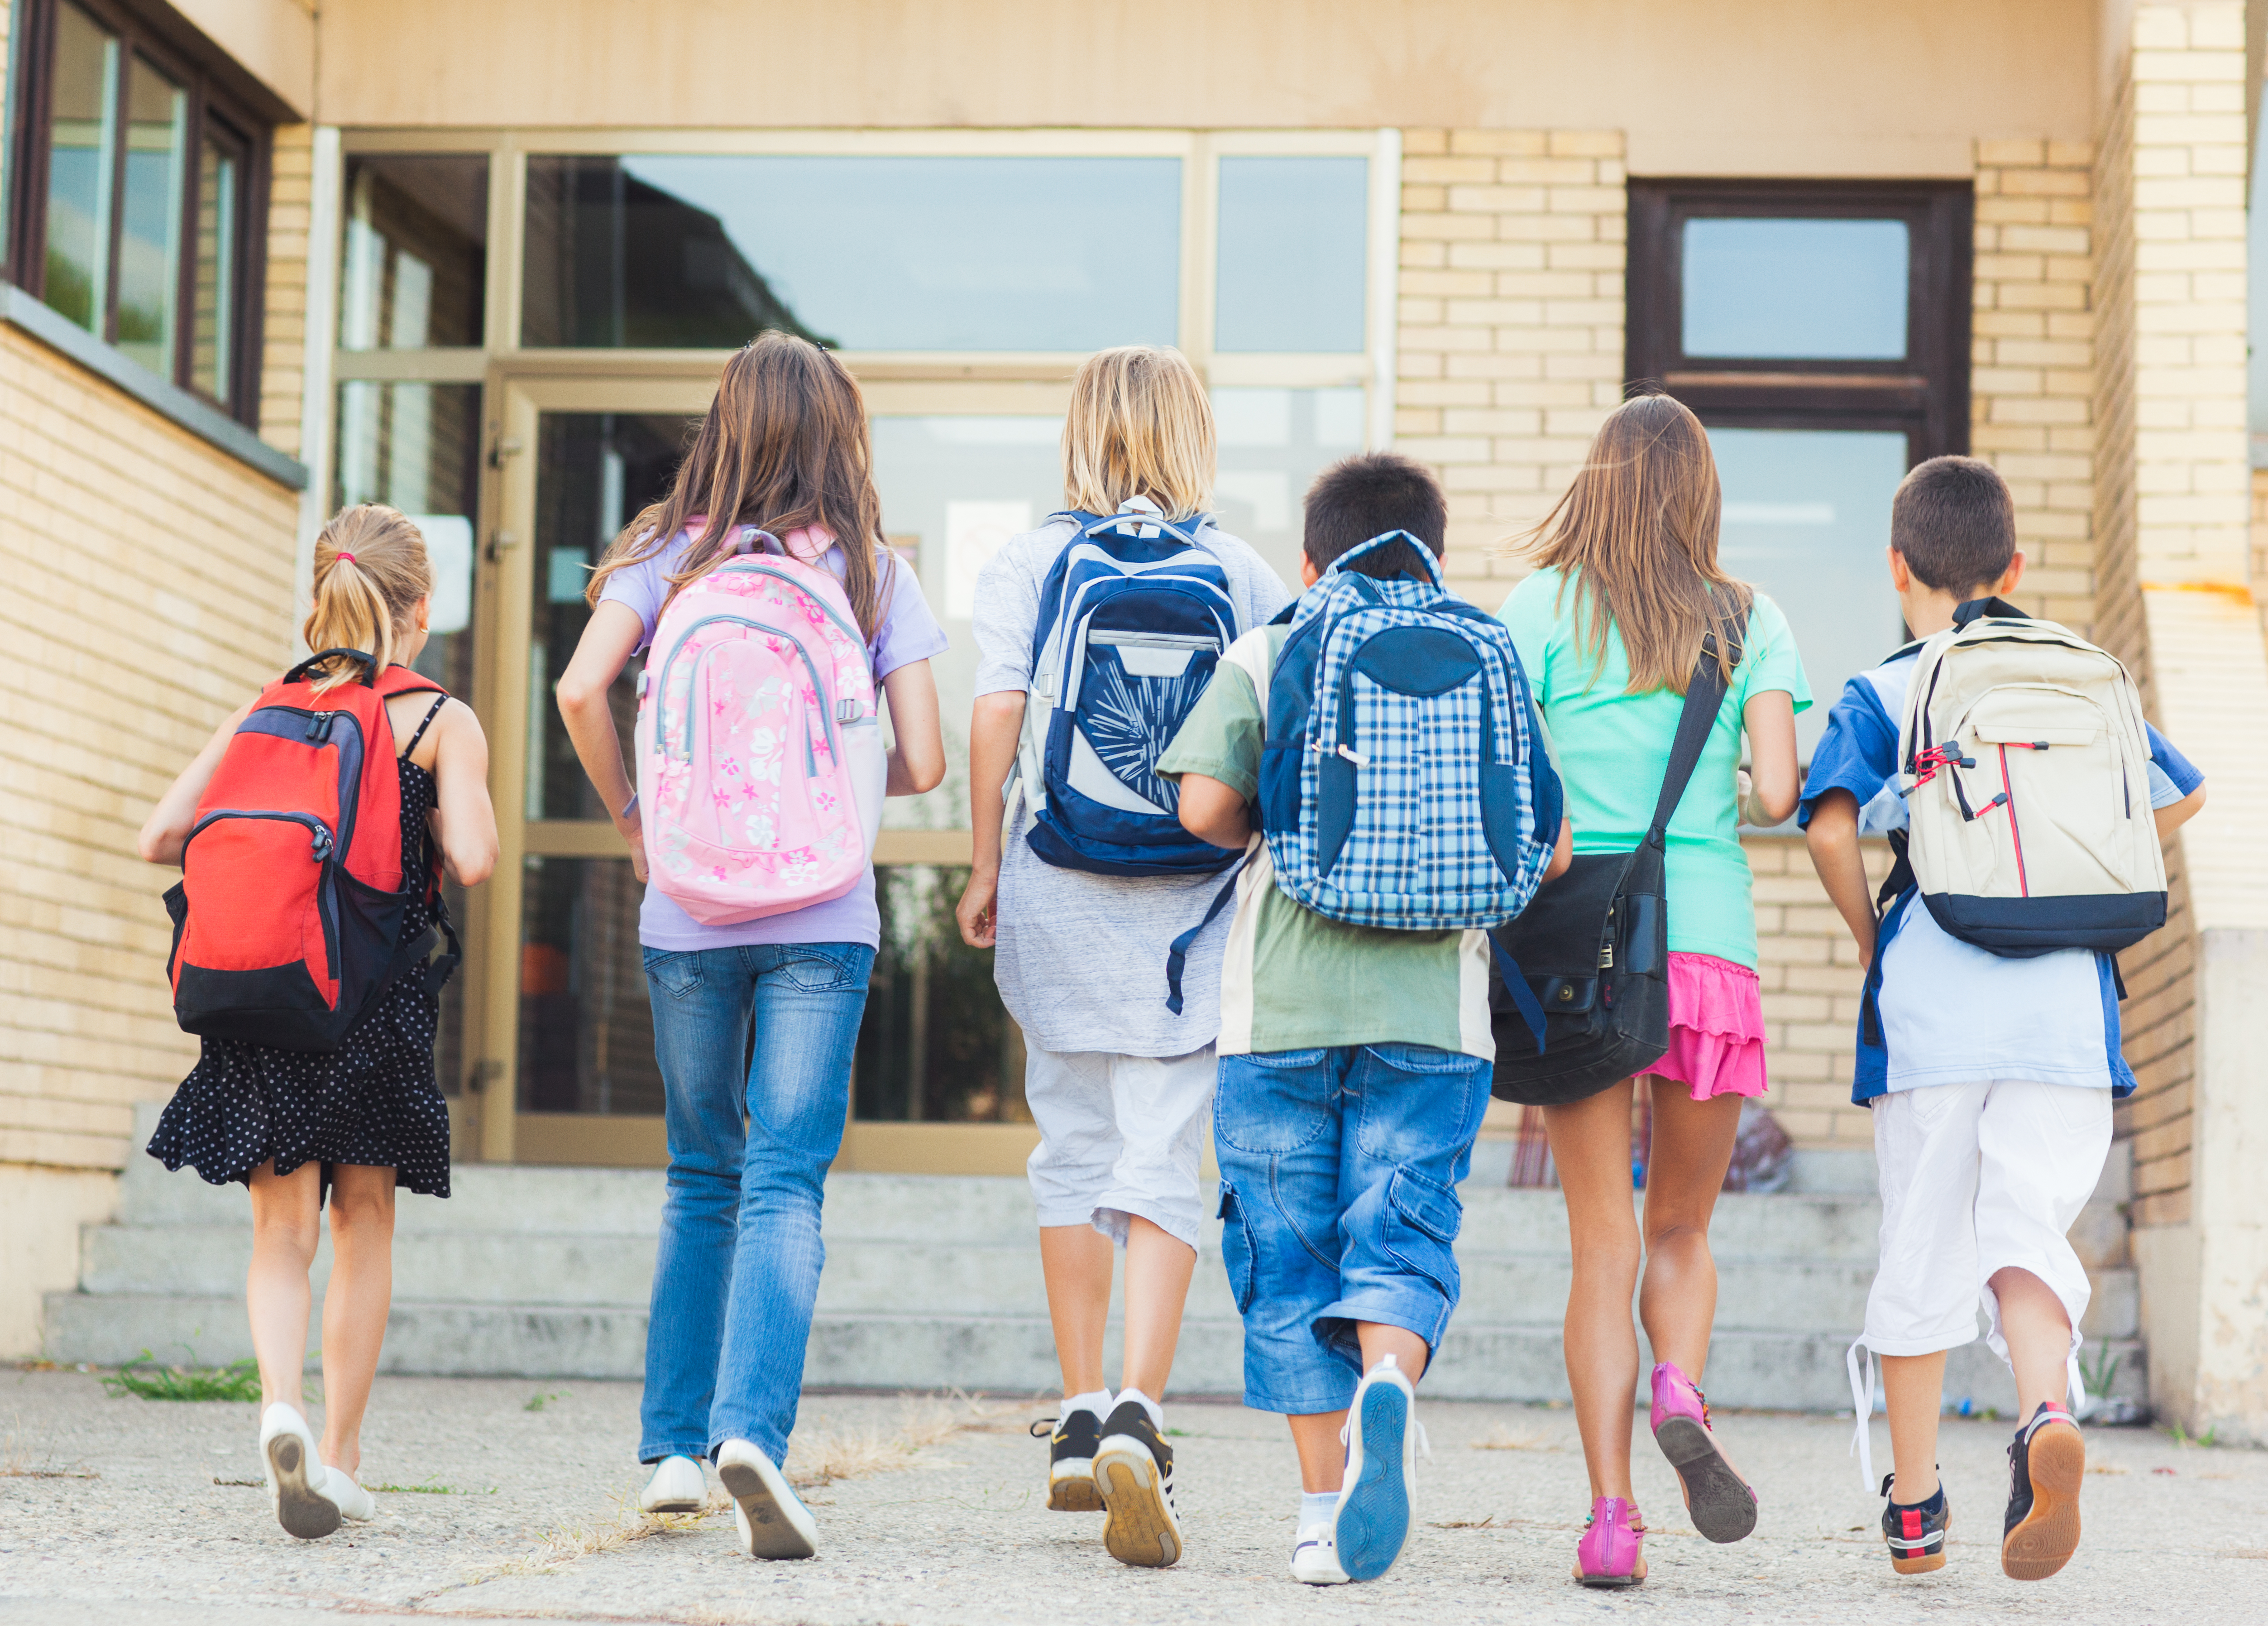 d31ec66c090be4 BACK-TO-SCHOOL: Lighten the Backpack Load and Other Tips – Mayo ...